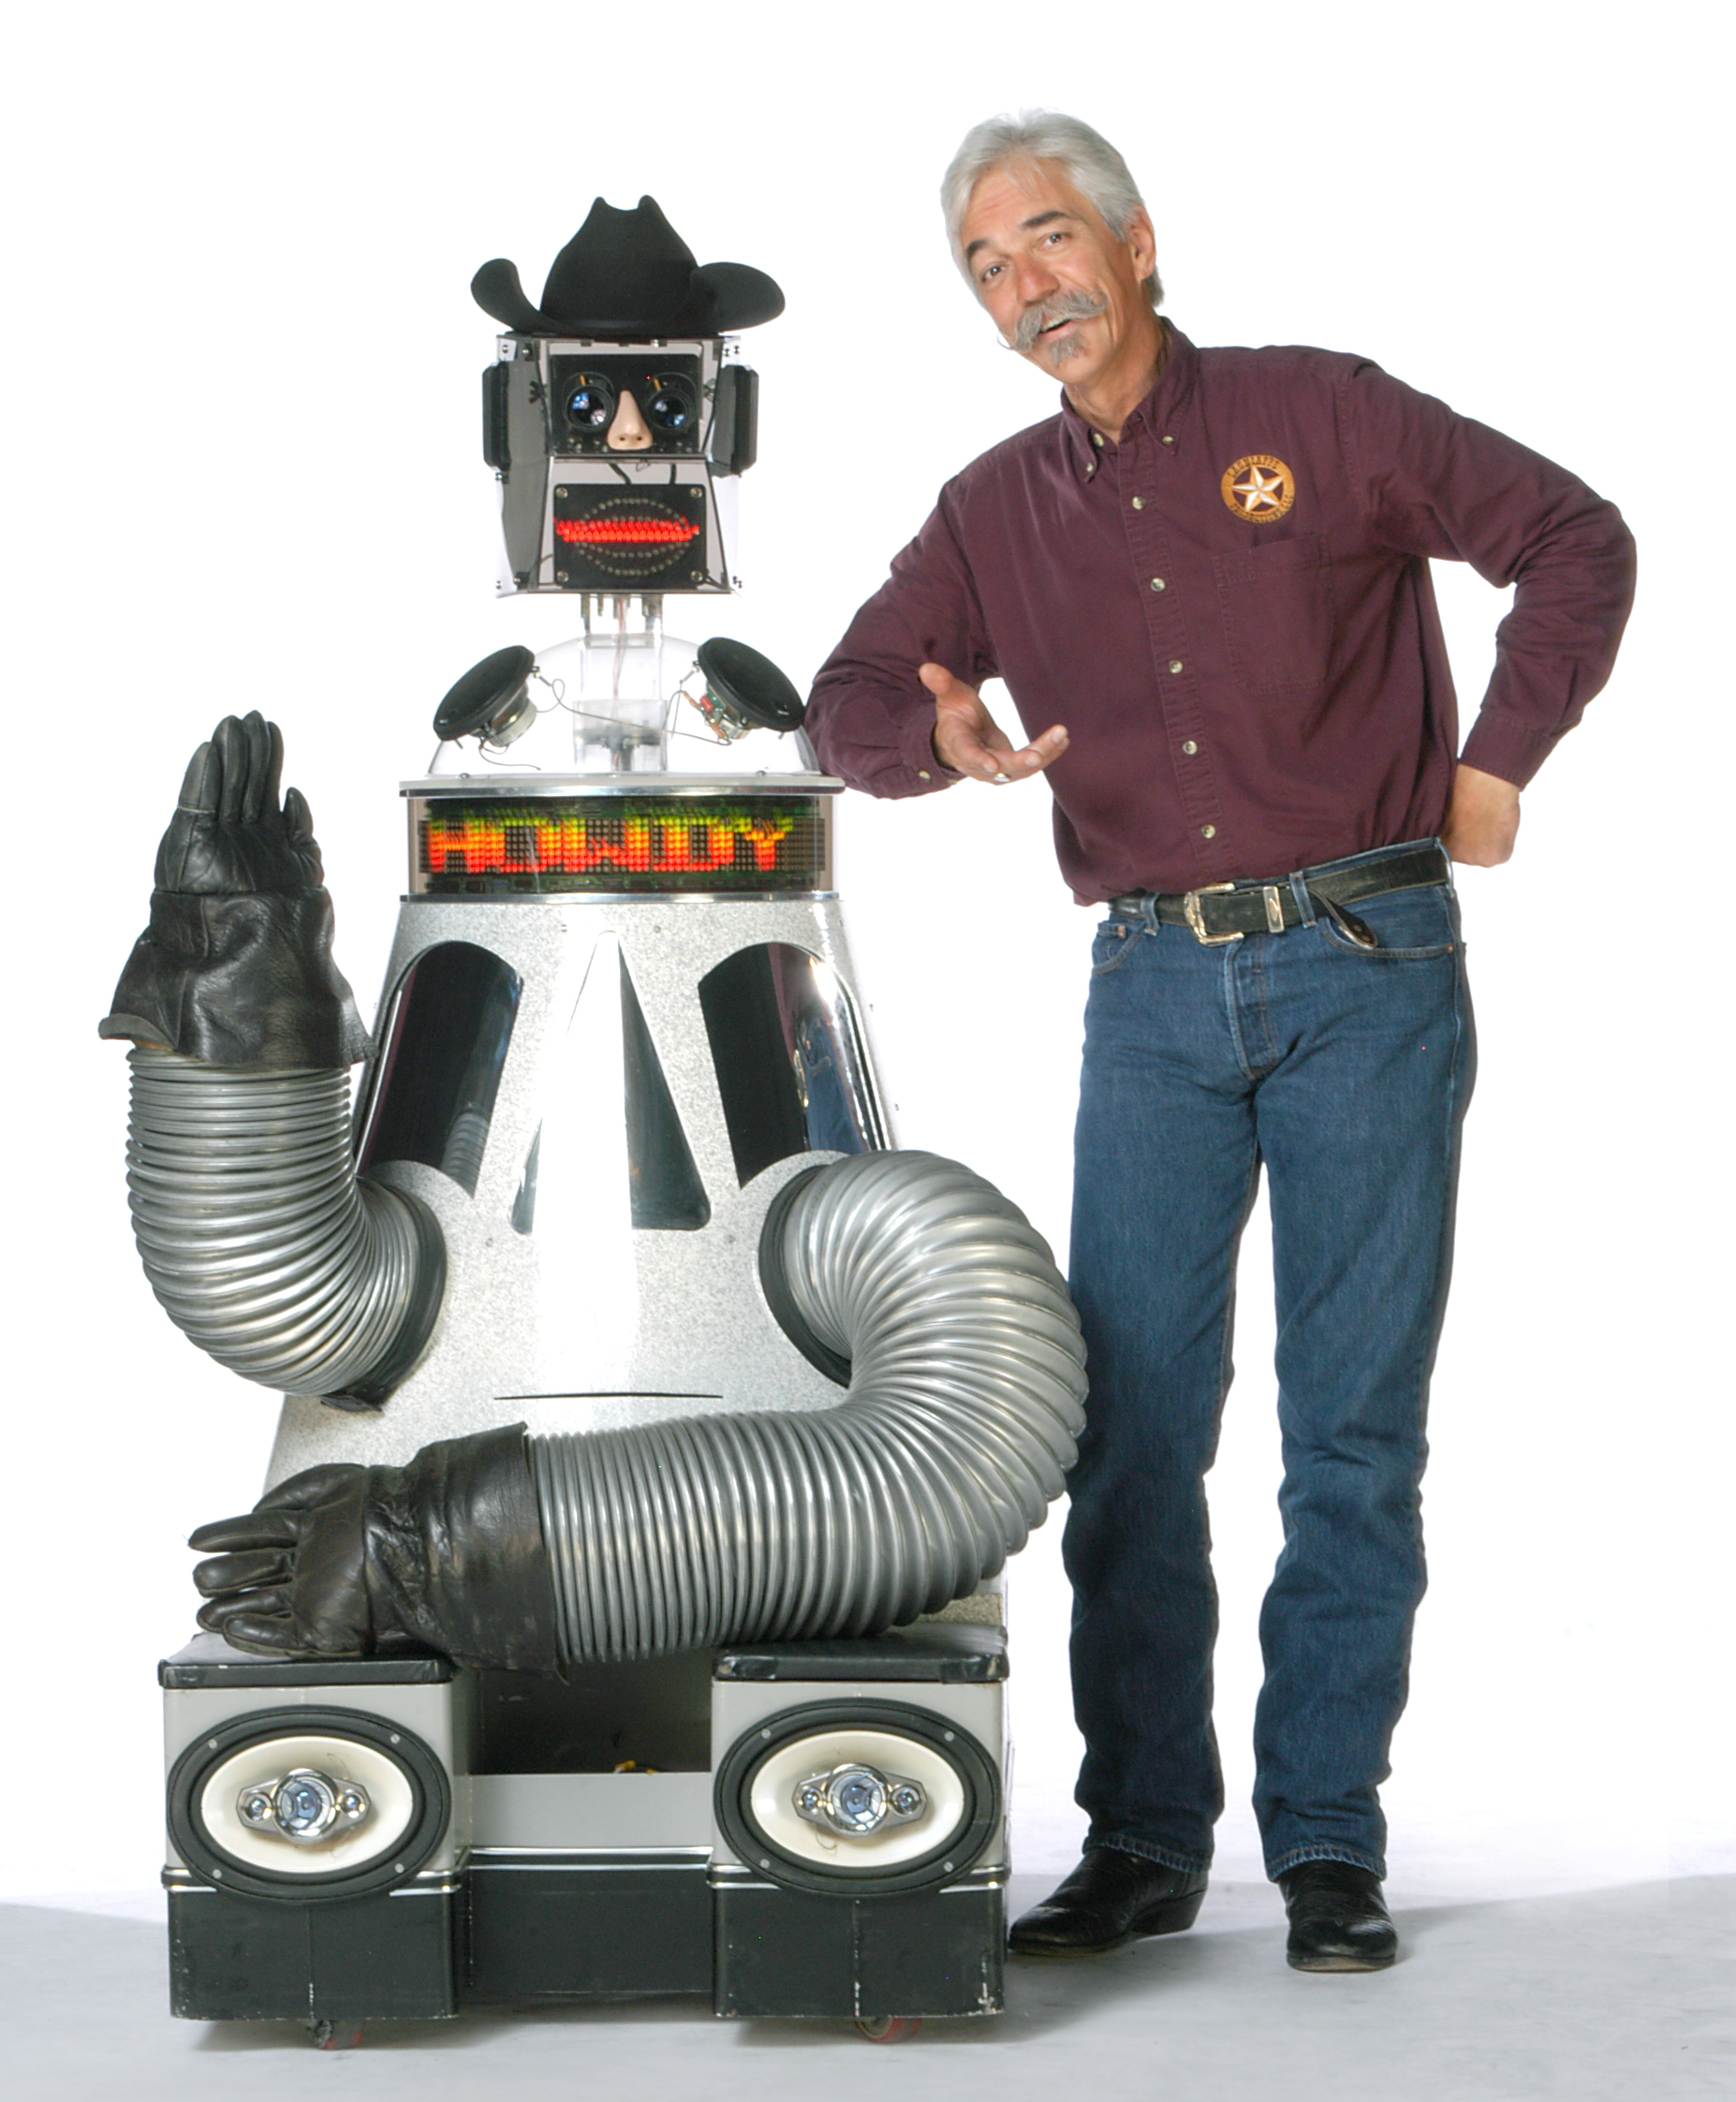 Rusty Gears the Robot Entertainer